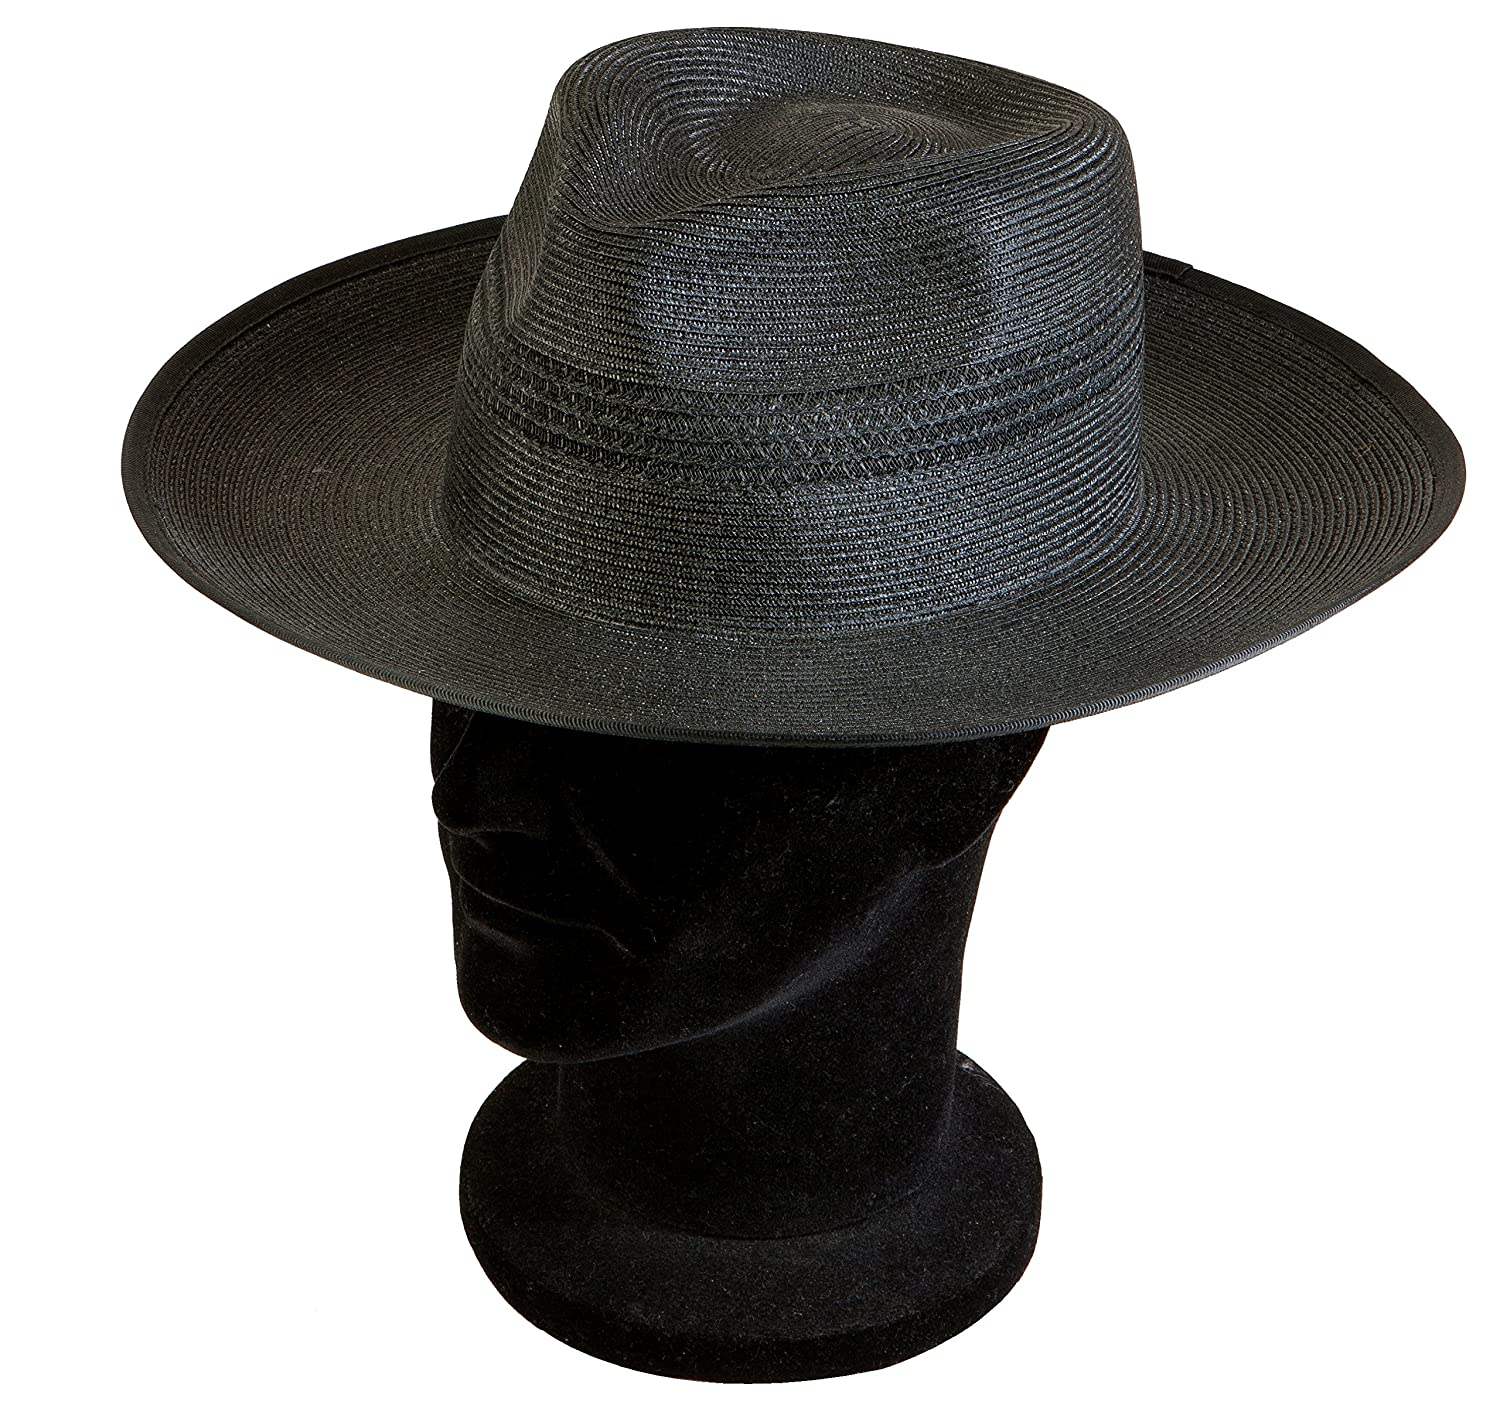 Acclaim Kalgoorlie International Cricket Umpire Summer Hat With The Stay Put Headband Black